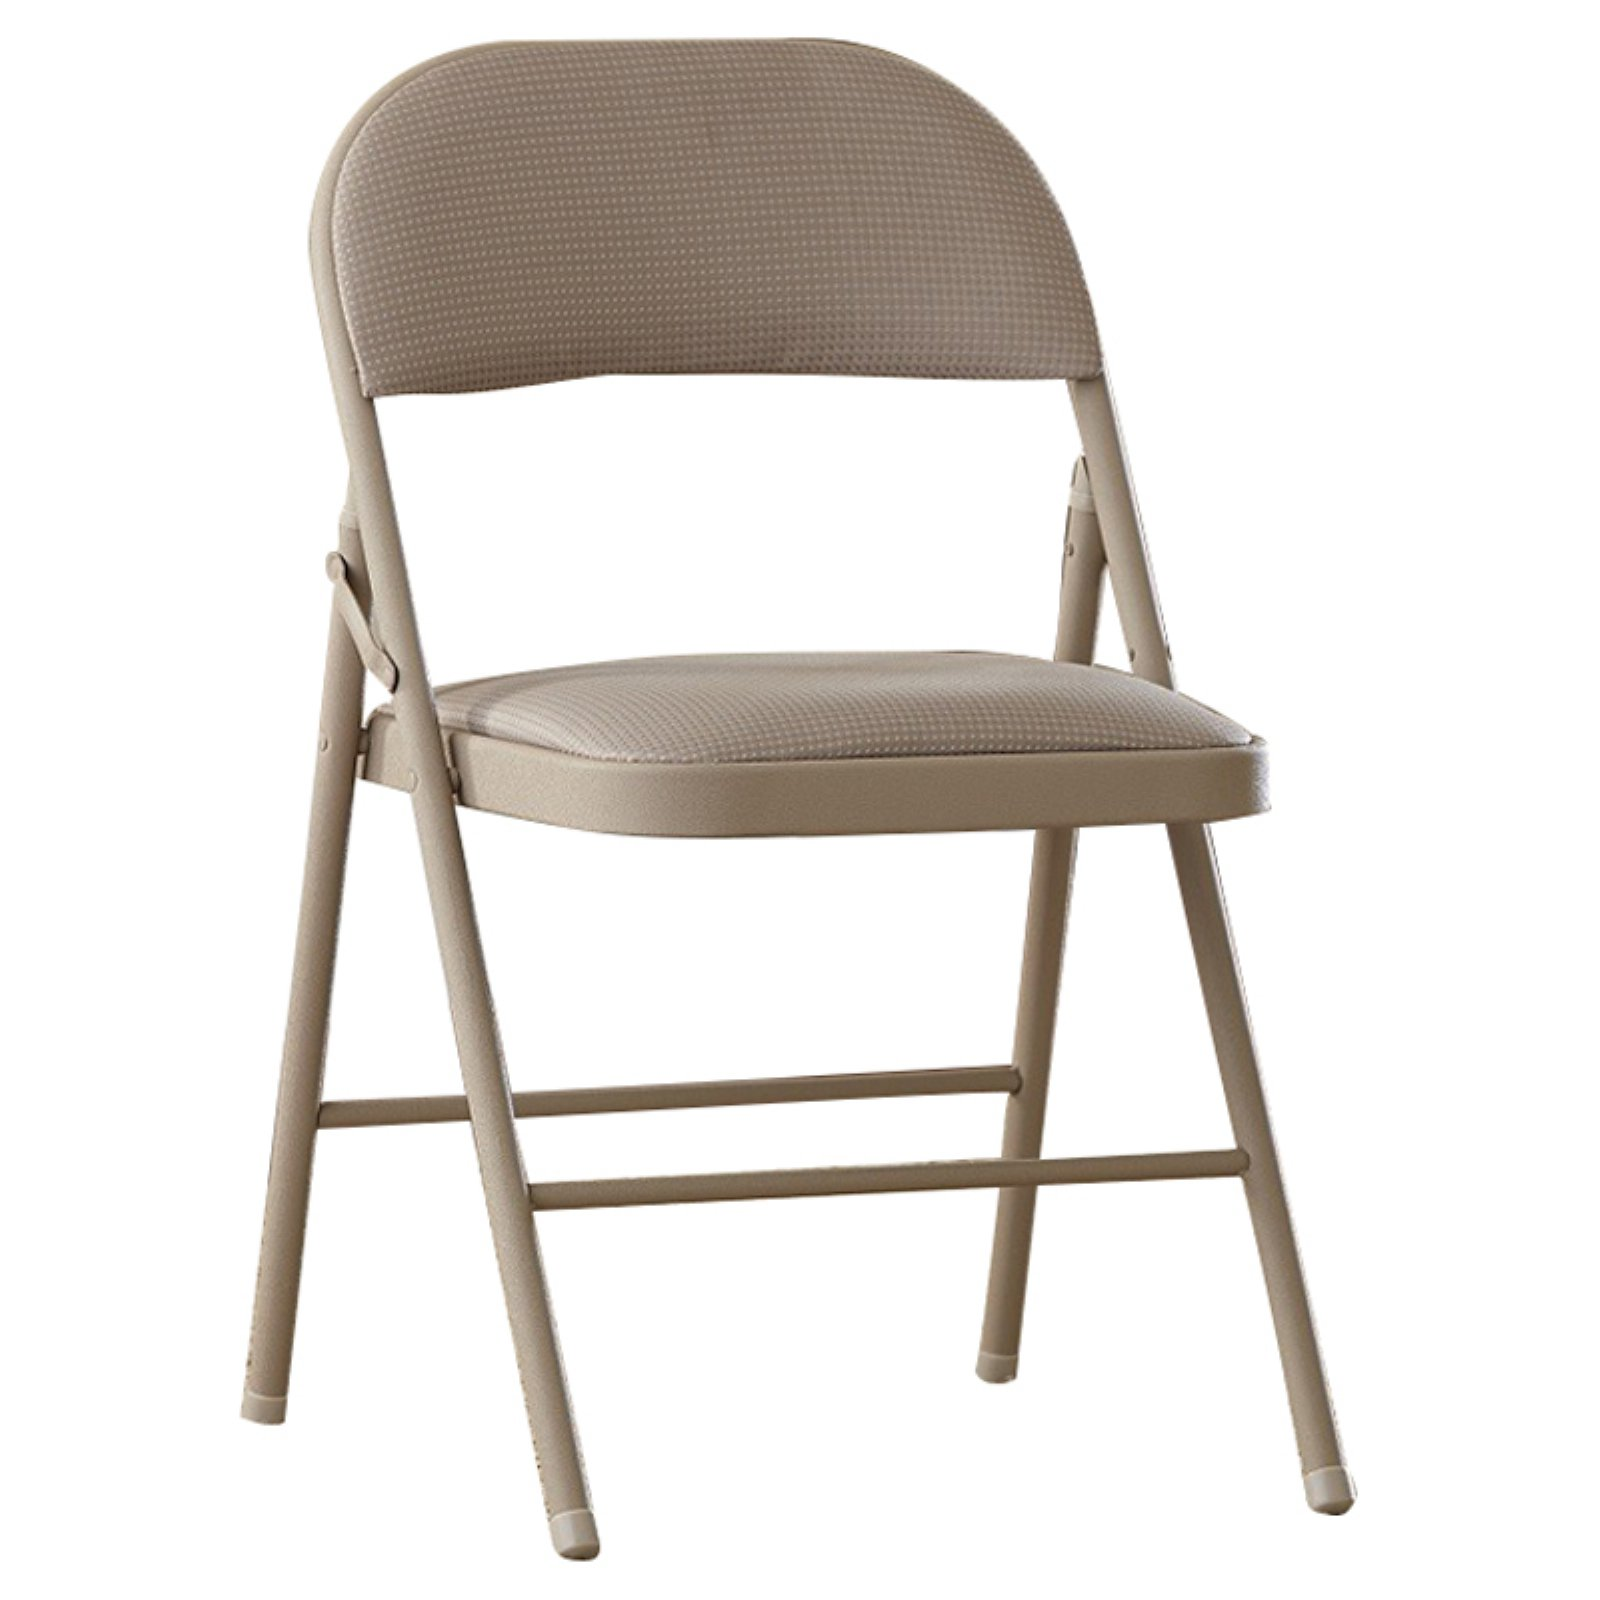 Delicieux Cosco Deluxe Fabric Folding Chair, Set Of 4   Walmart.com